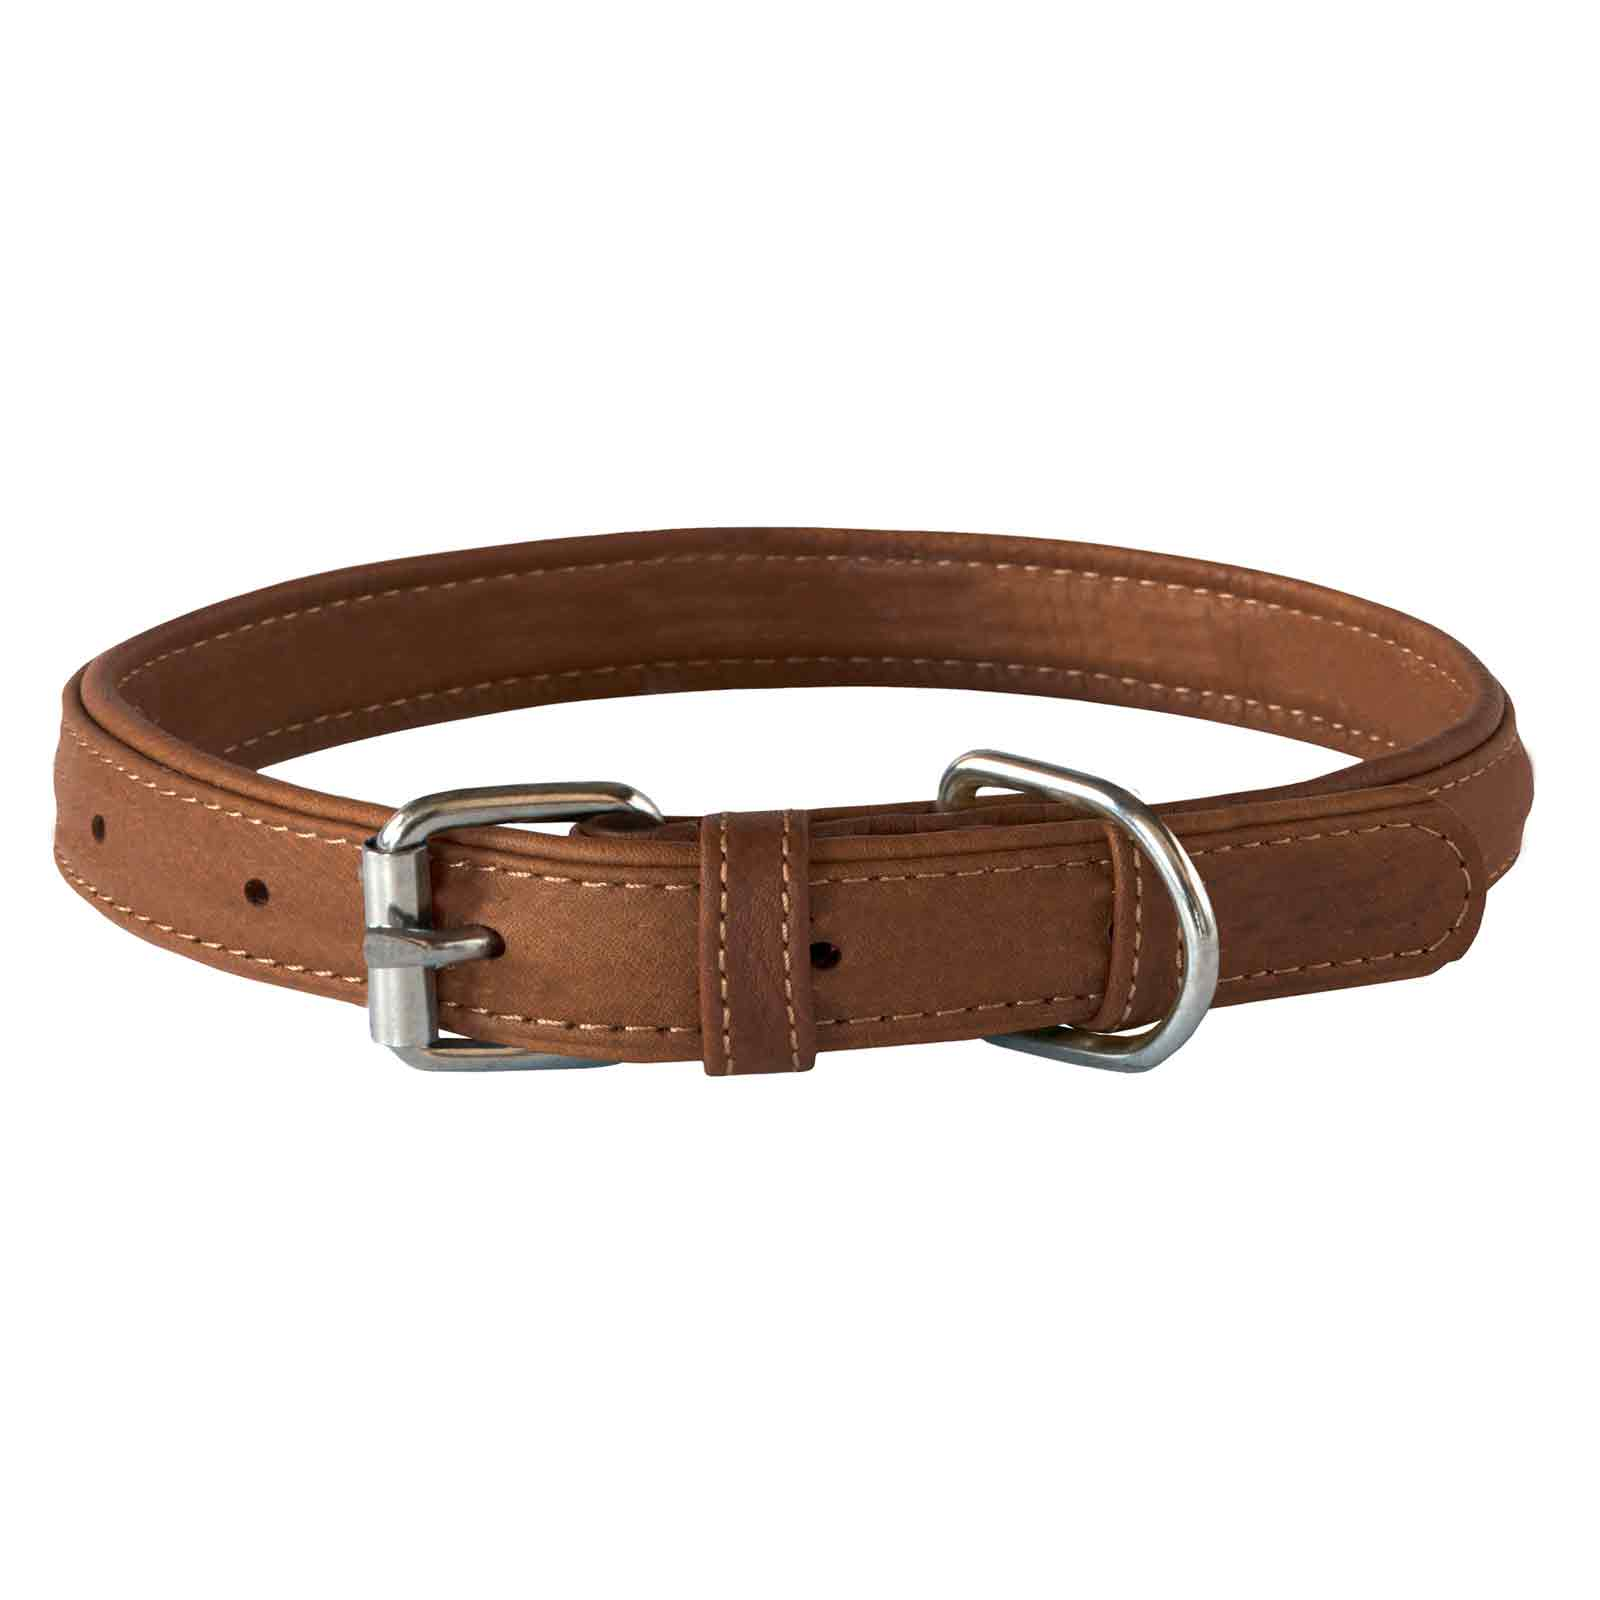 DOG COLLARS MANUFACTURE IN KANPUR